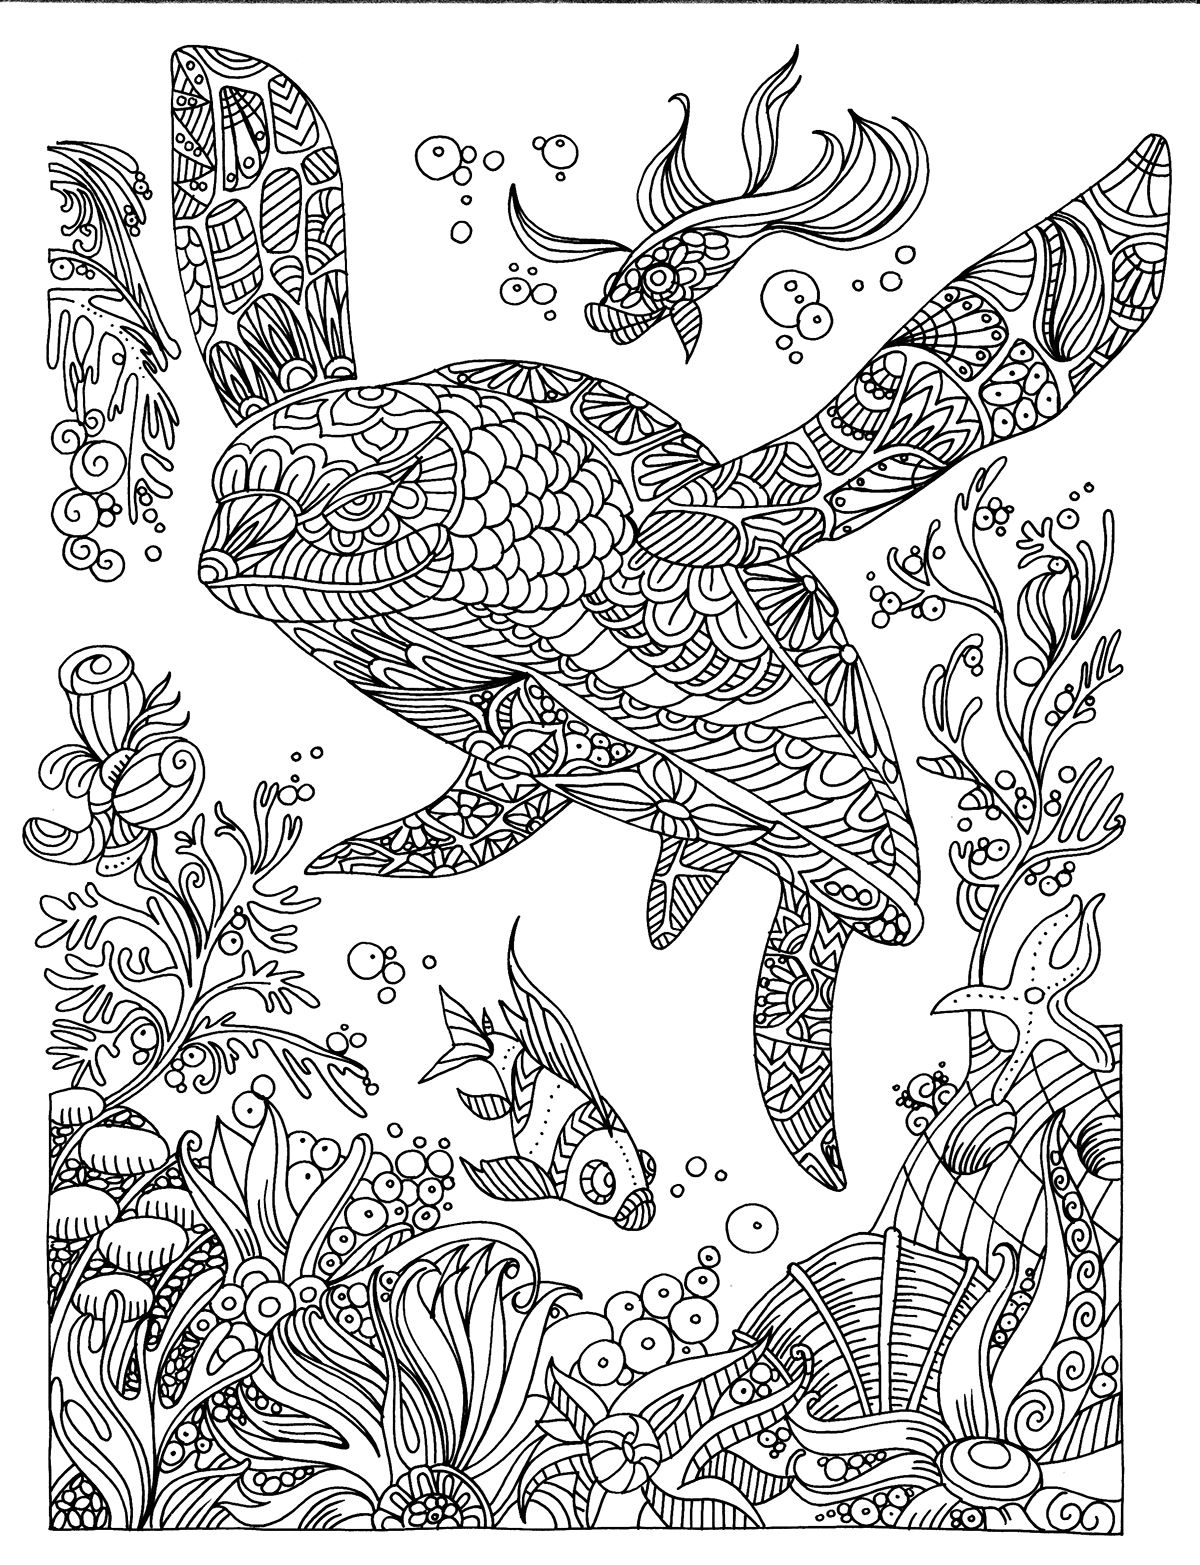 Turtle Illustration Colouring Page Mandalas Zentangle Relaxing